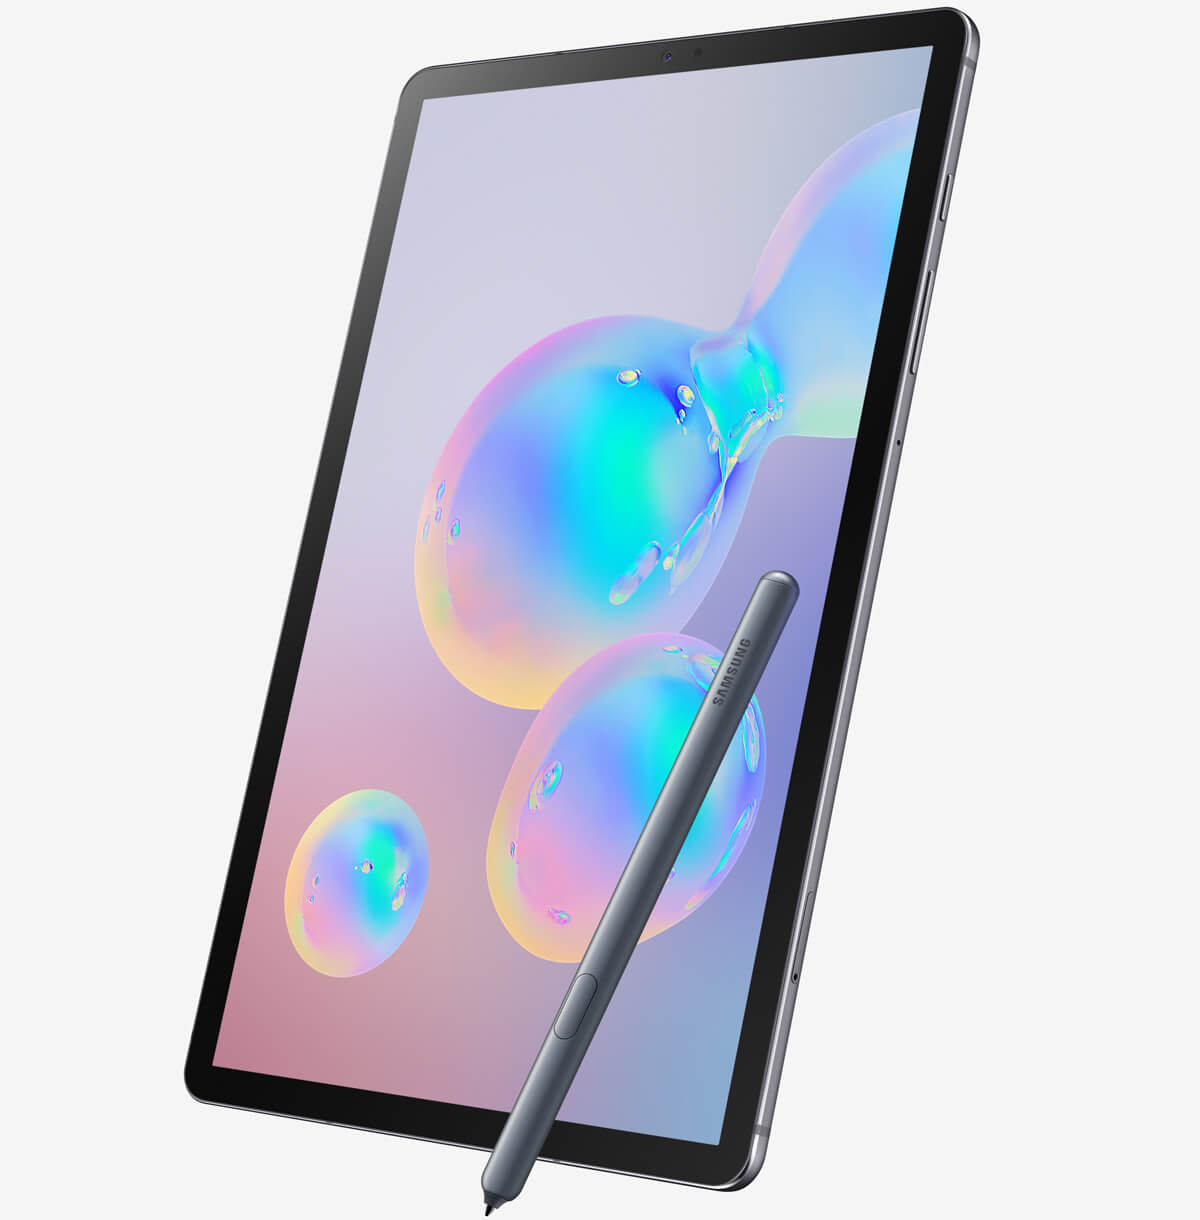 The Best Tablets 2020: An Ever Evolving and Affordable Form of Computing 1